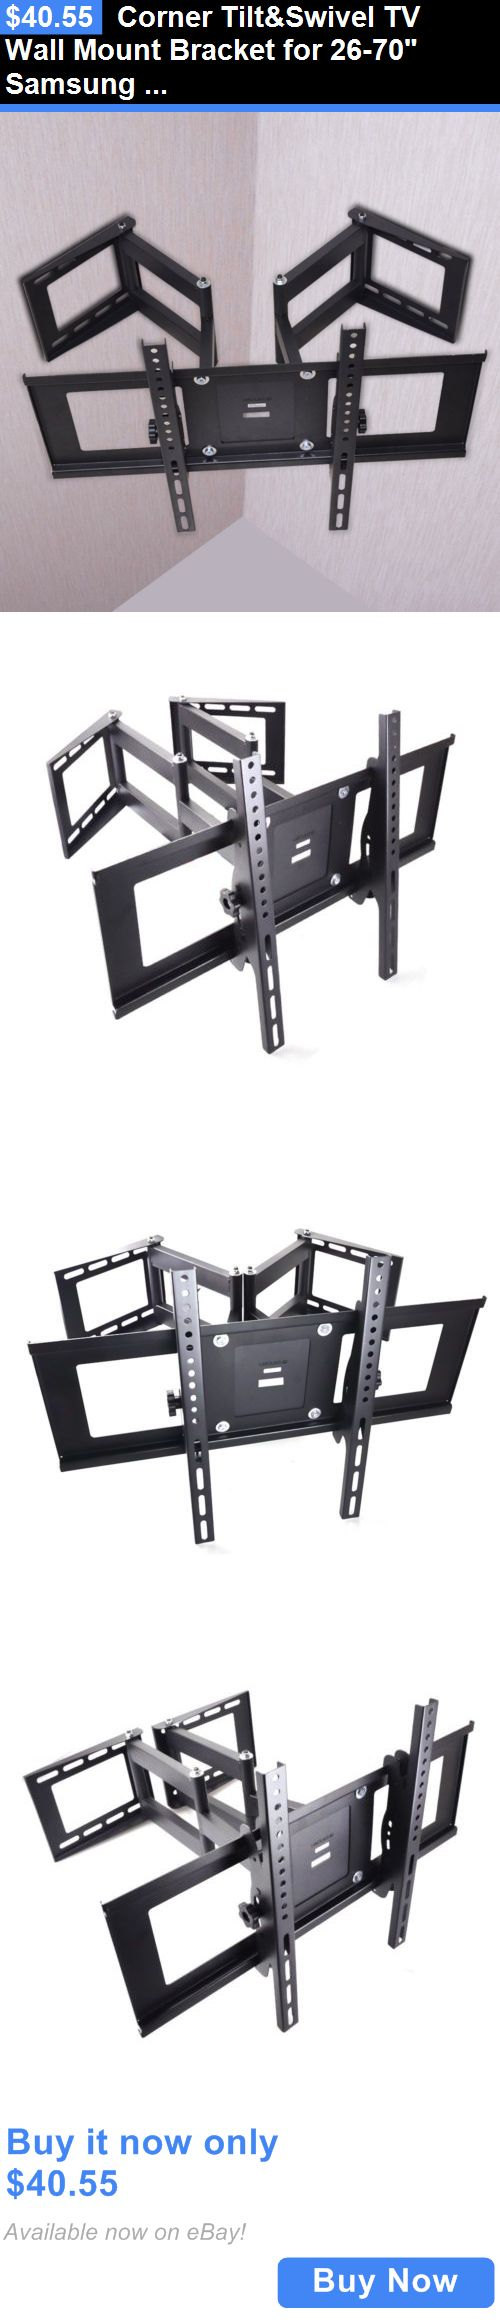 TV Mounts and Brackets: Corner Tiltandswivel Tv Wall Mount Bracket For 26-70 Samsung Lg Vizio Led Lcd BUY IT NOW ONLY: $40.55